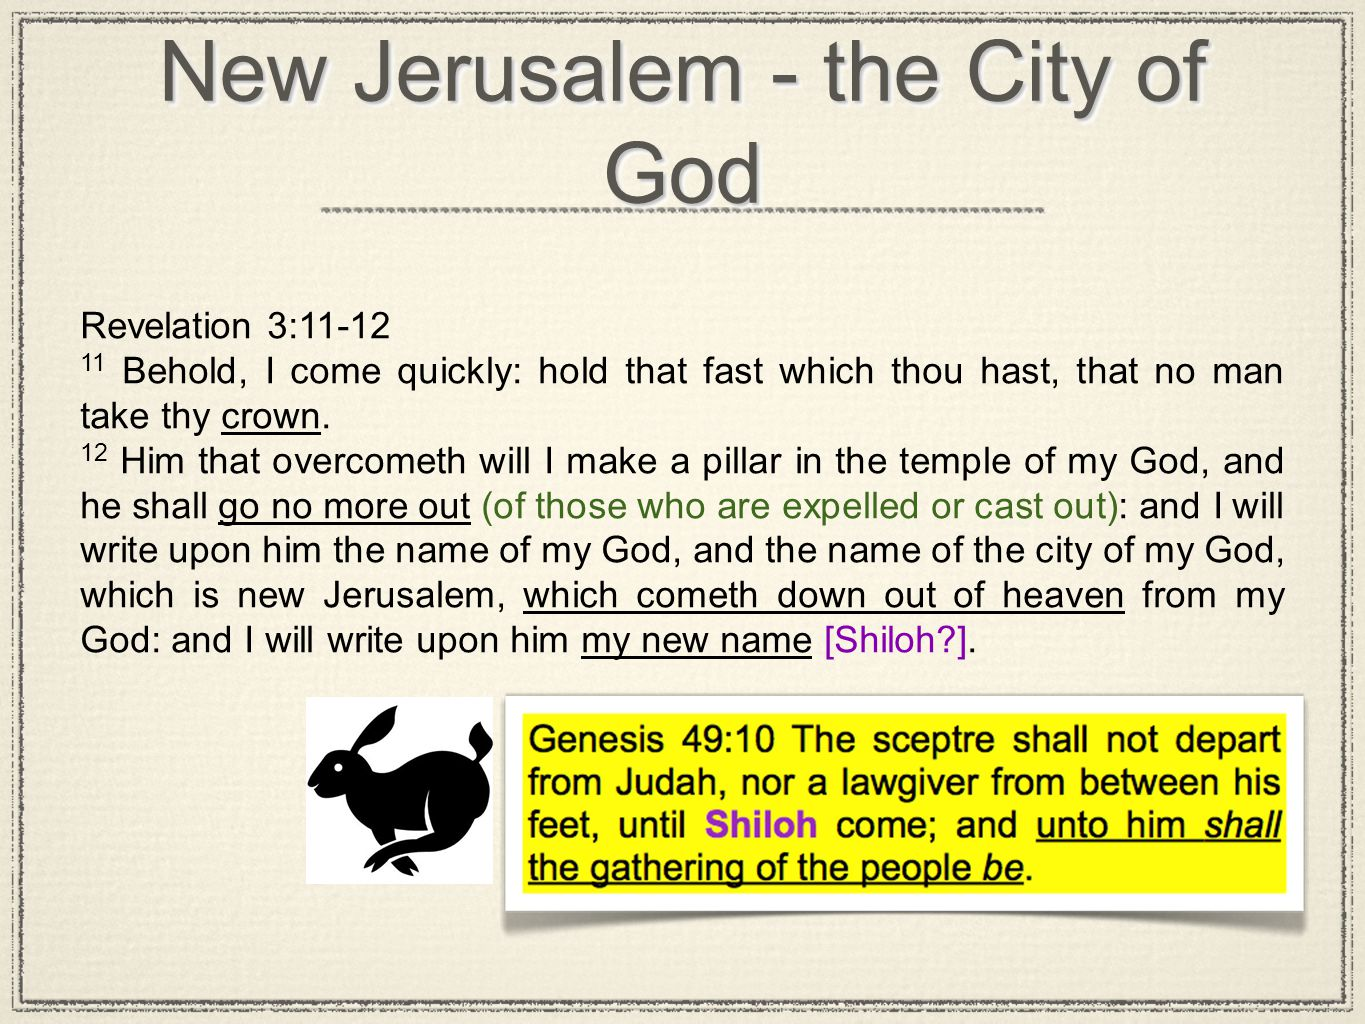 New Jerusalem - the City of God Revelation 3:11-12 11 Behold, I come quickly: hold that fast which thou hast, that no man take thy crown. 12 Him that